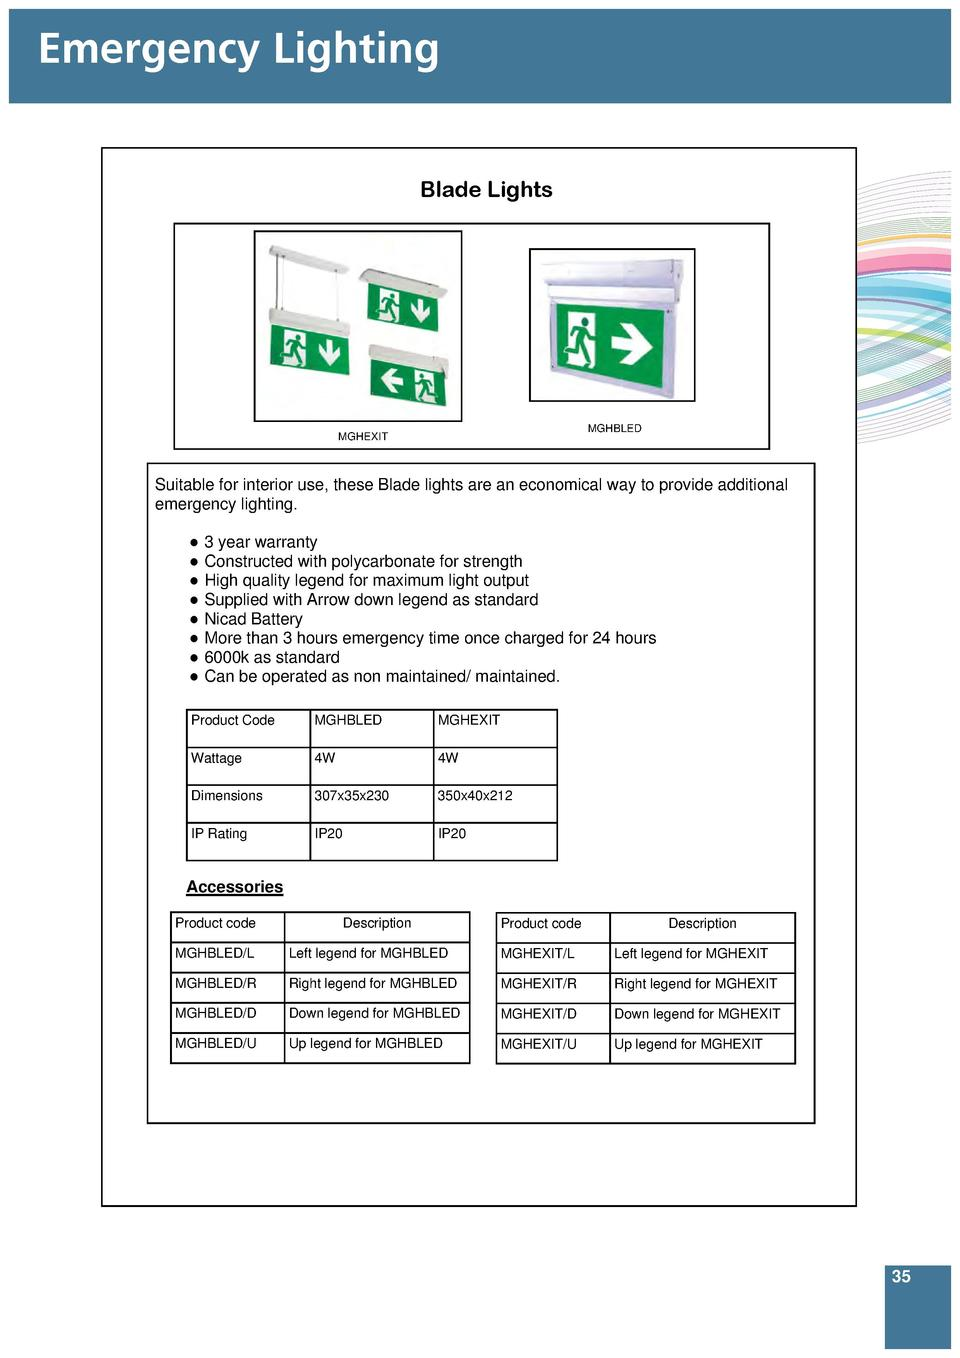 Non Maintained Emergency Lighting Wiring Diagram Transfer Switch SRJ1Dxjl Non Maintained Emergency Lighting Wiring Diagramhtml  sc 1 st  Free S&le Diagram & Non Maintained Emergency Lighting Wiring mindmapper for mac ... azcodes.com